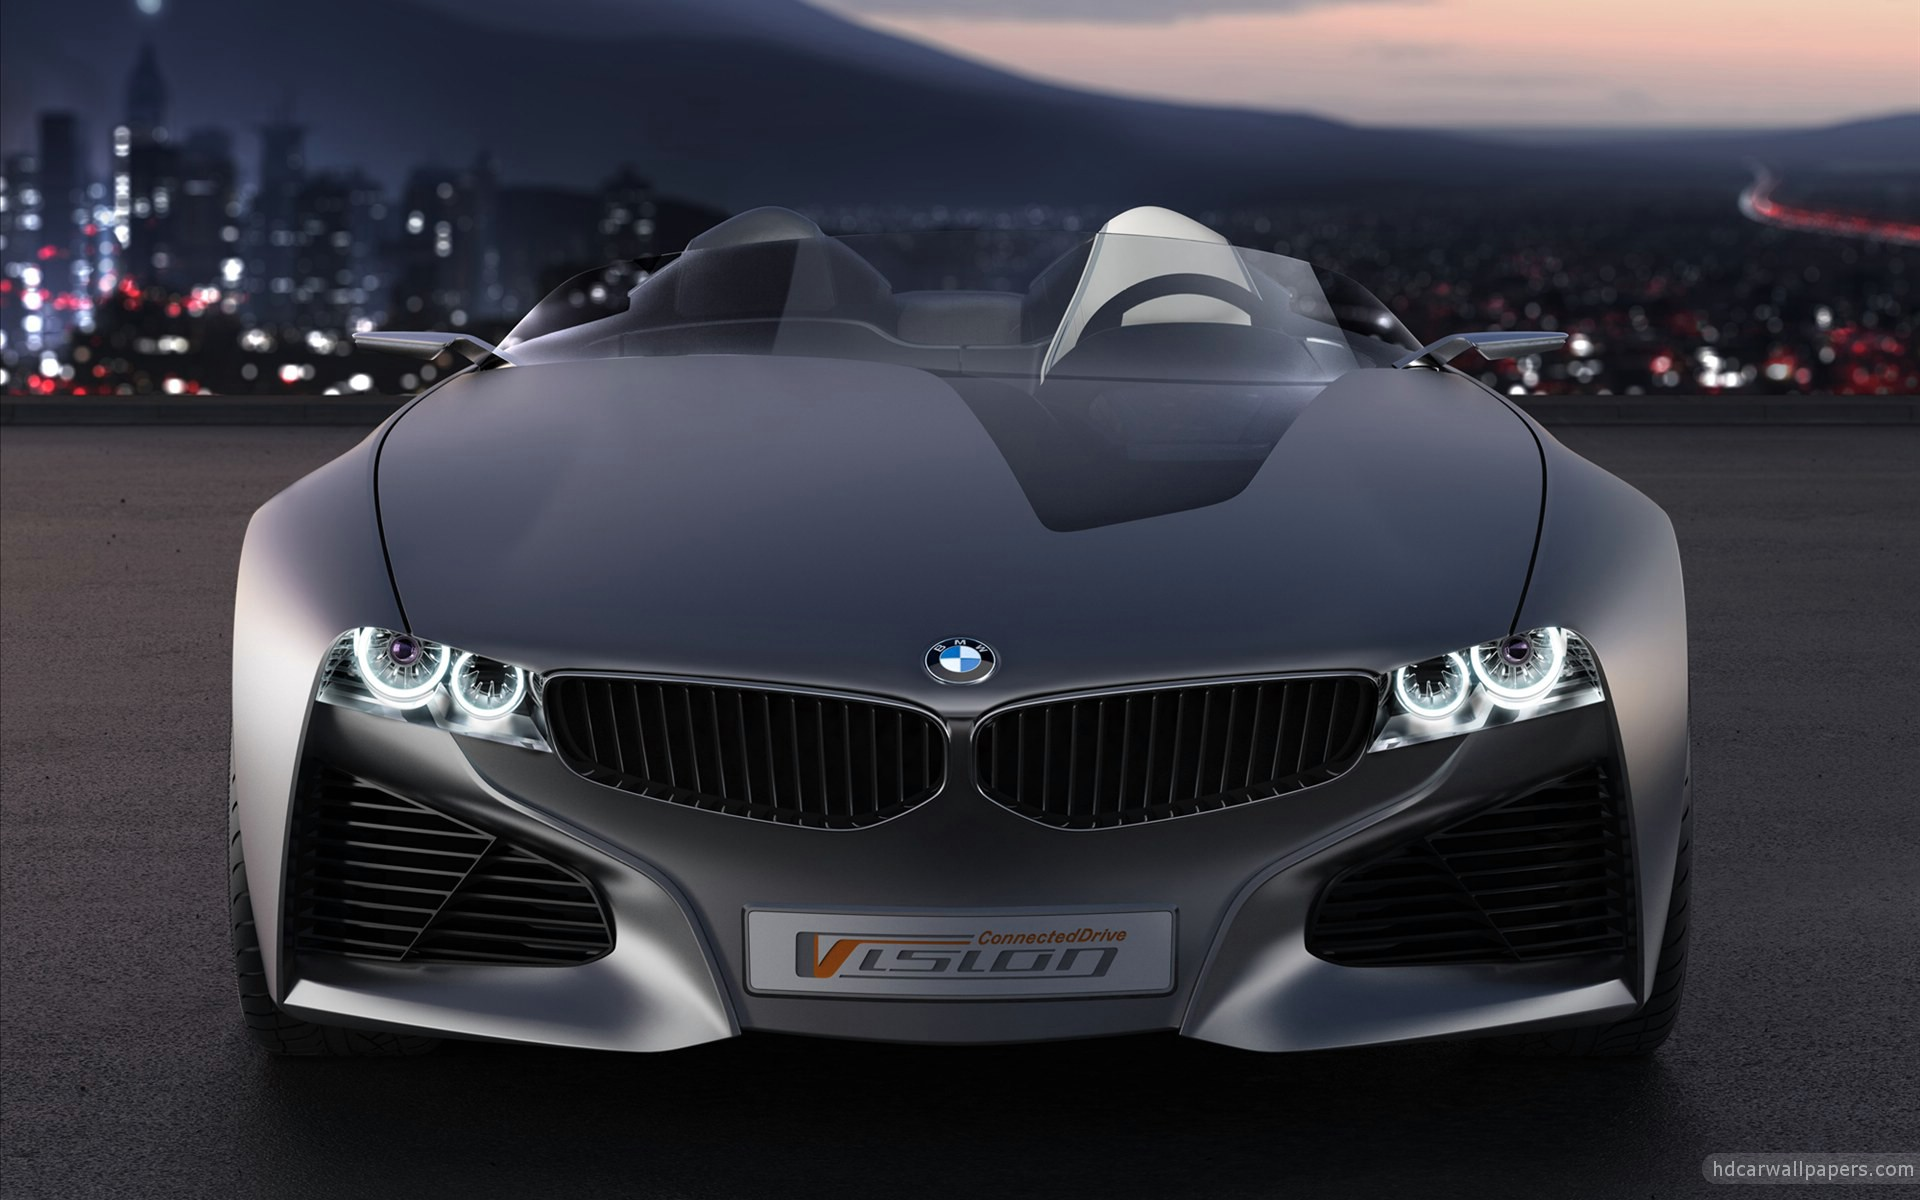 2011 bmw vision connected drive concept 5 wallpaper hd - Future cars hd wallpapers ...